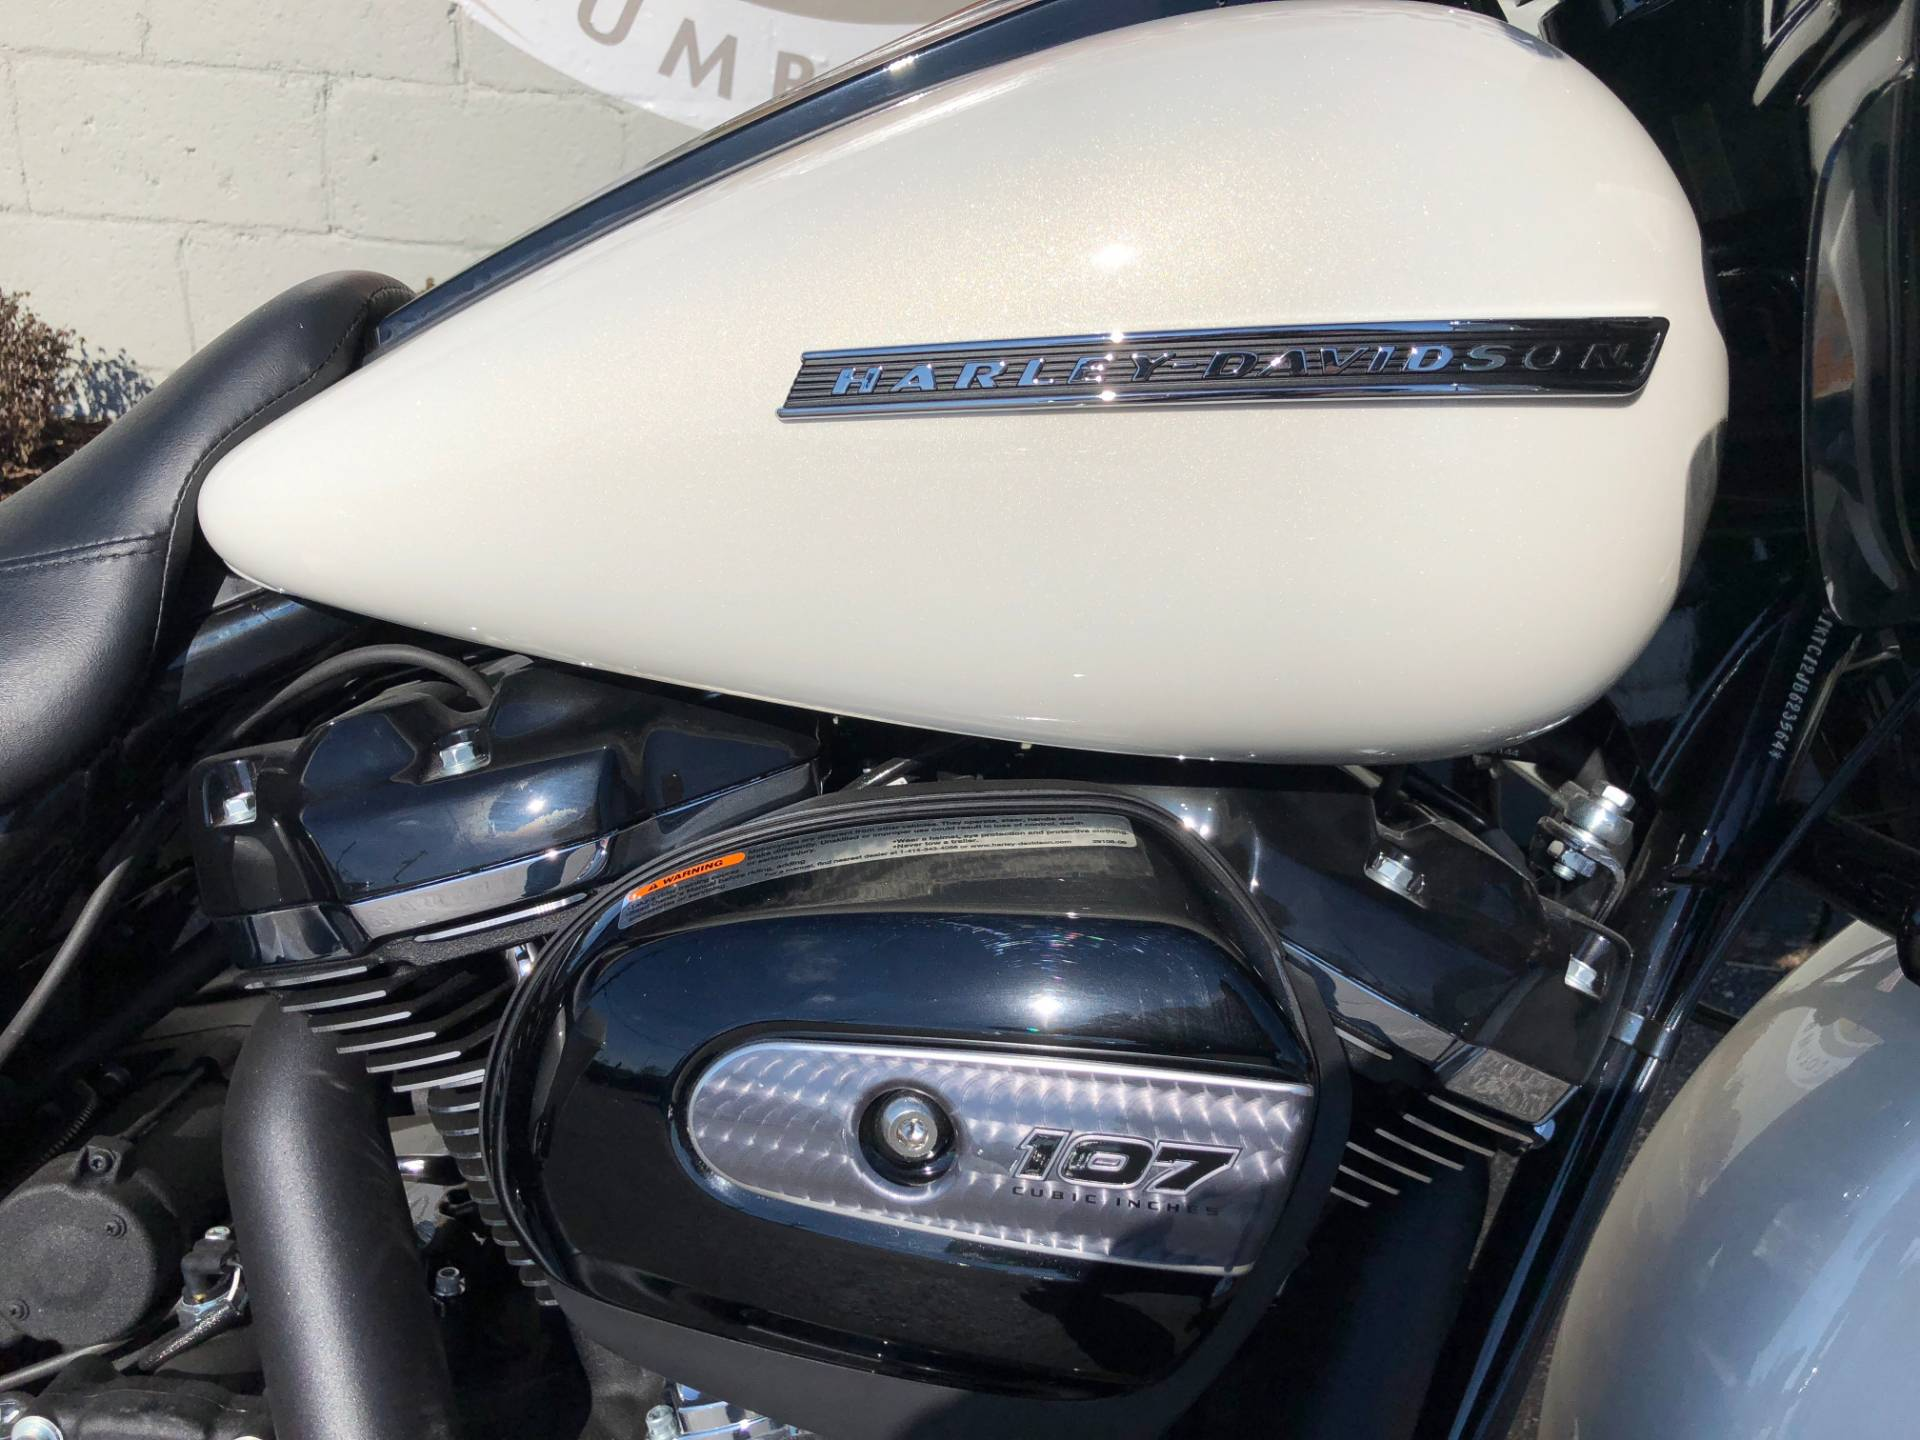 2018 Harley-Davidson FLHRXS in Sunbury, Ohio